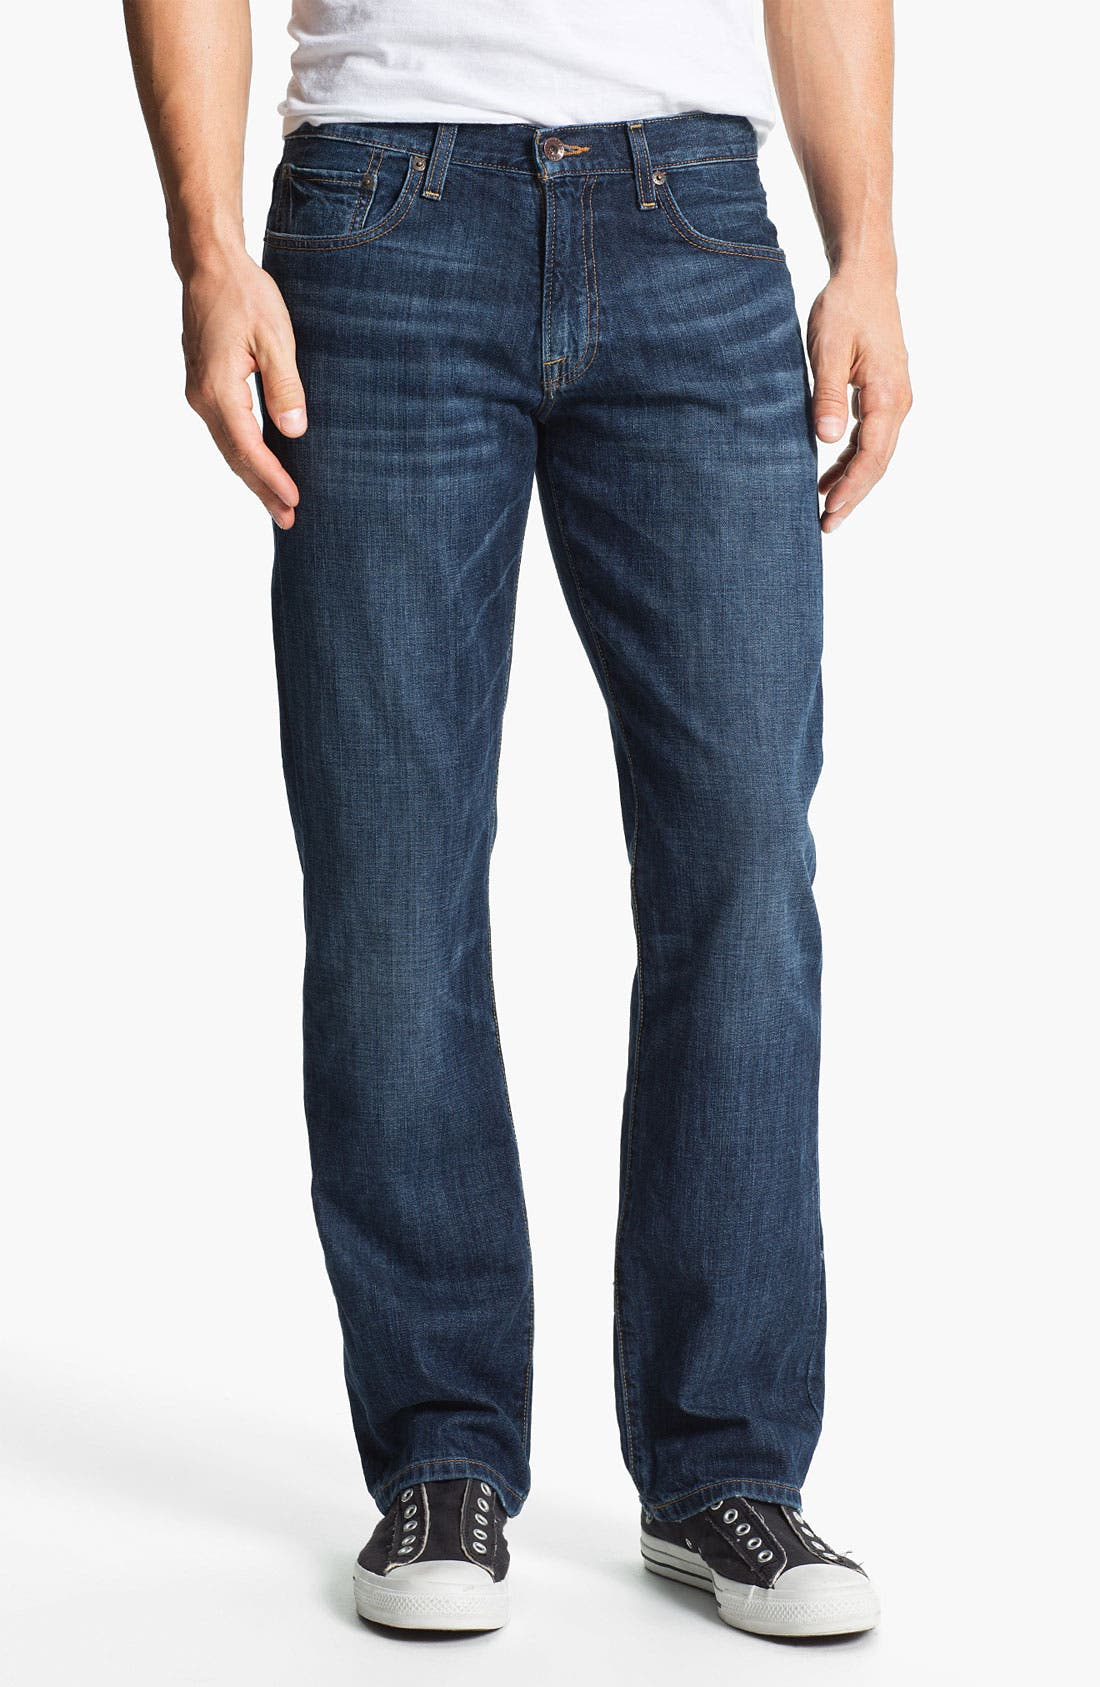 Alternate Image 1 Selected - Lucky Brand '221 Original' Straight Leg Jeans (Medium Temescal)